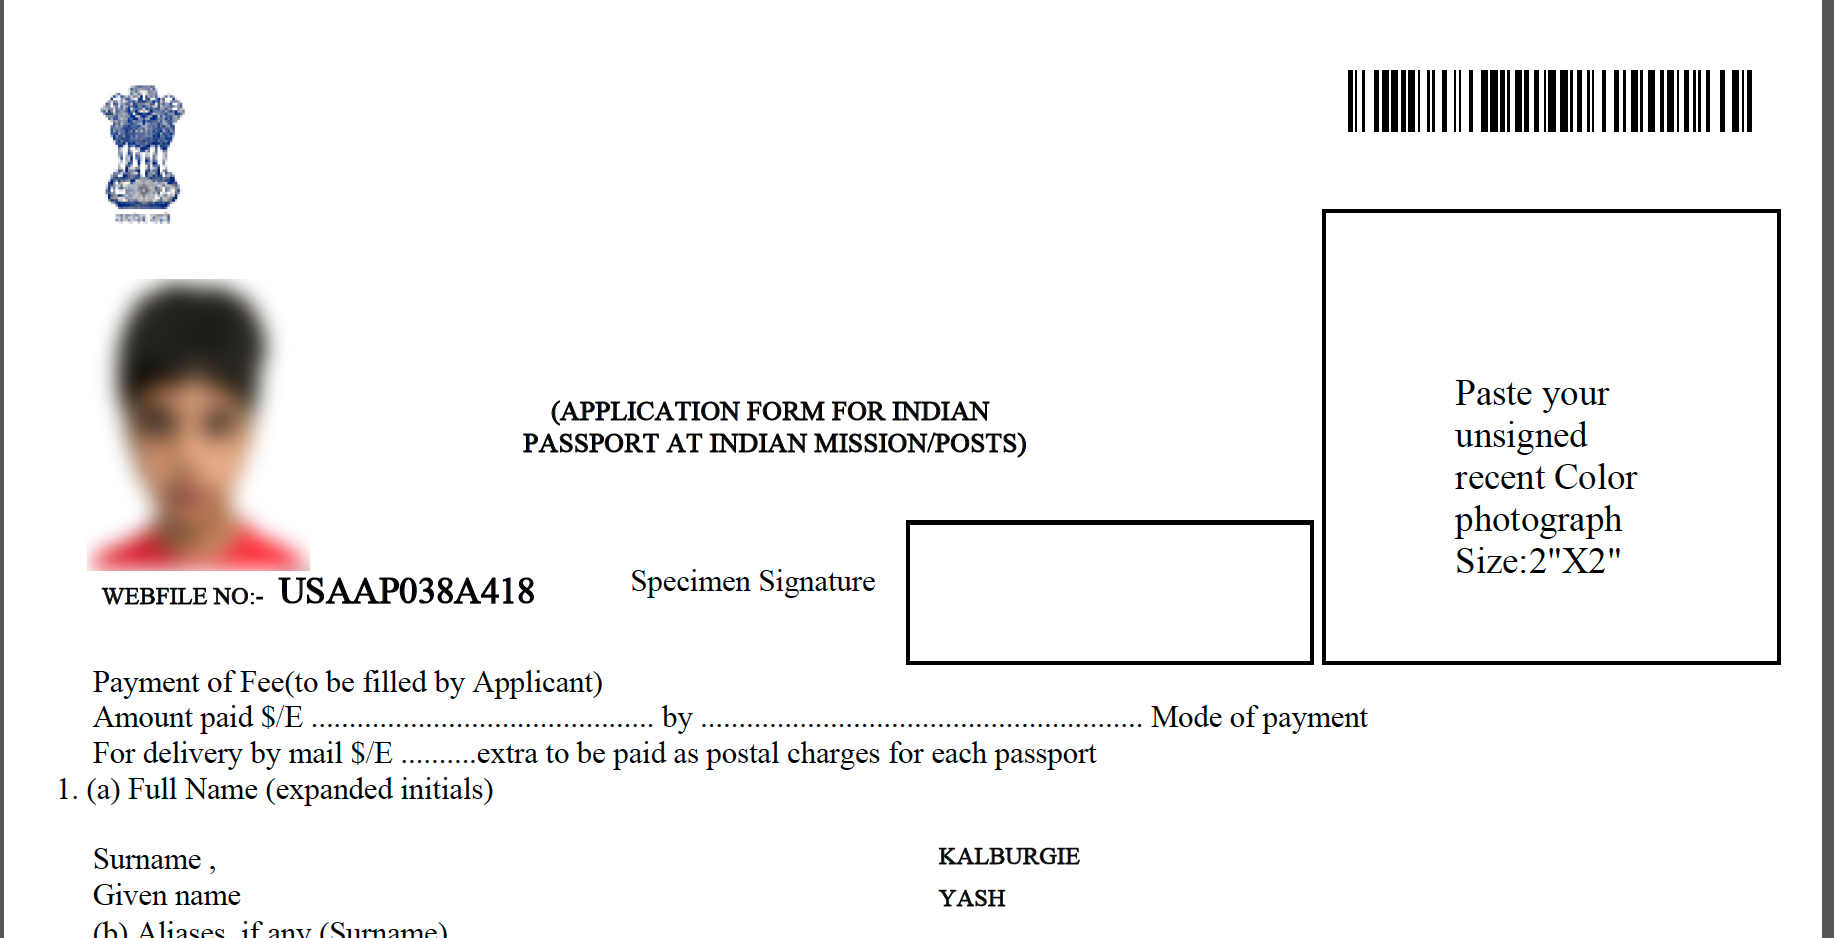 Renew Indian Child Passport in USA - Documents, Process